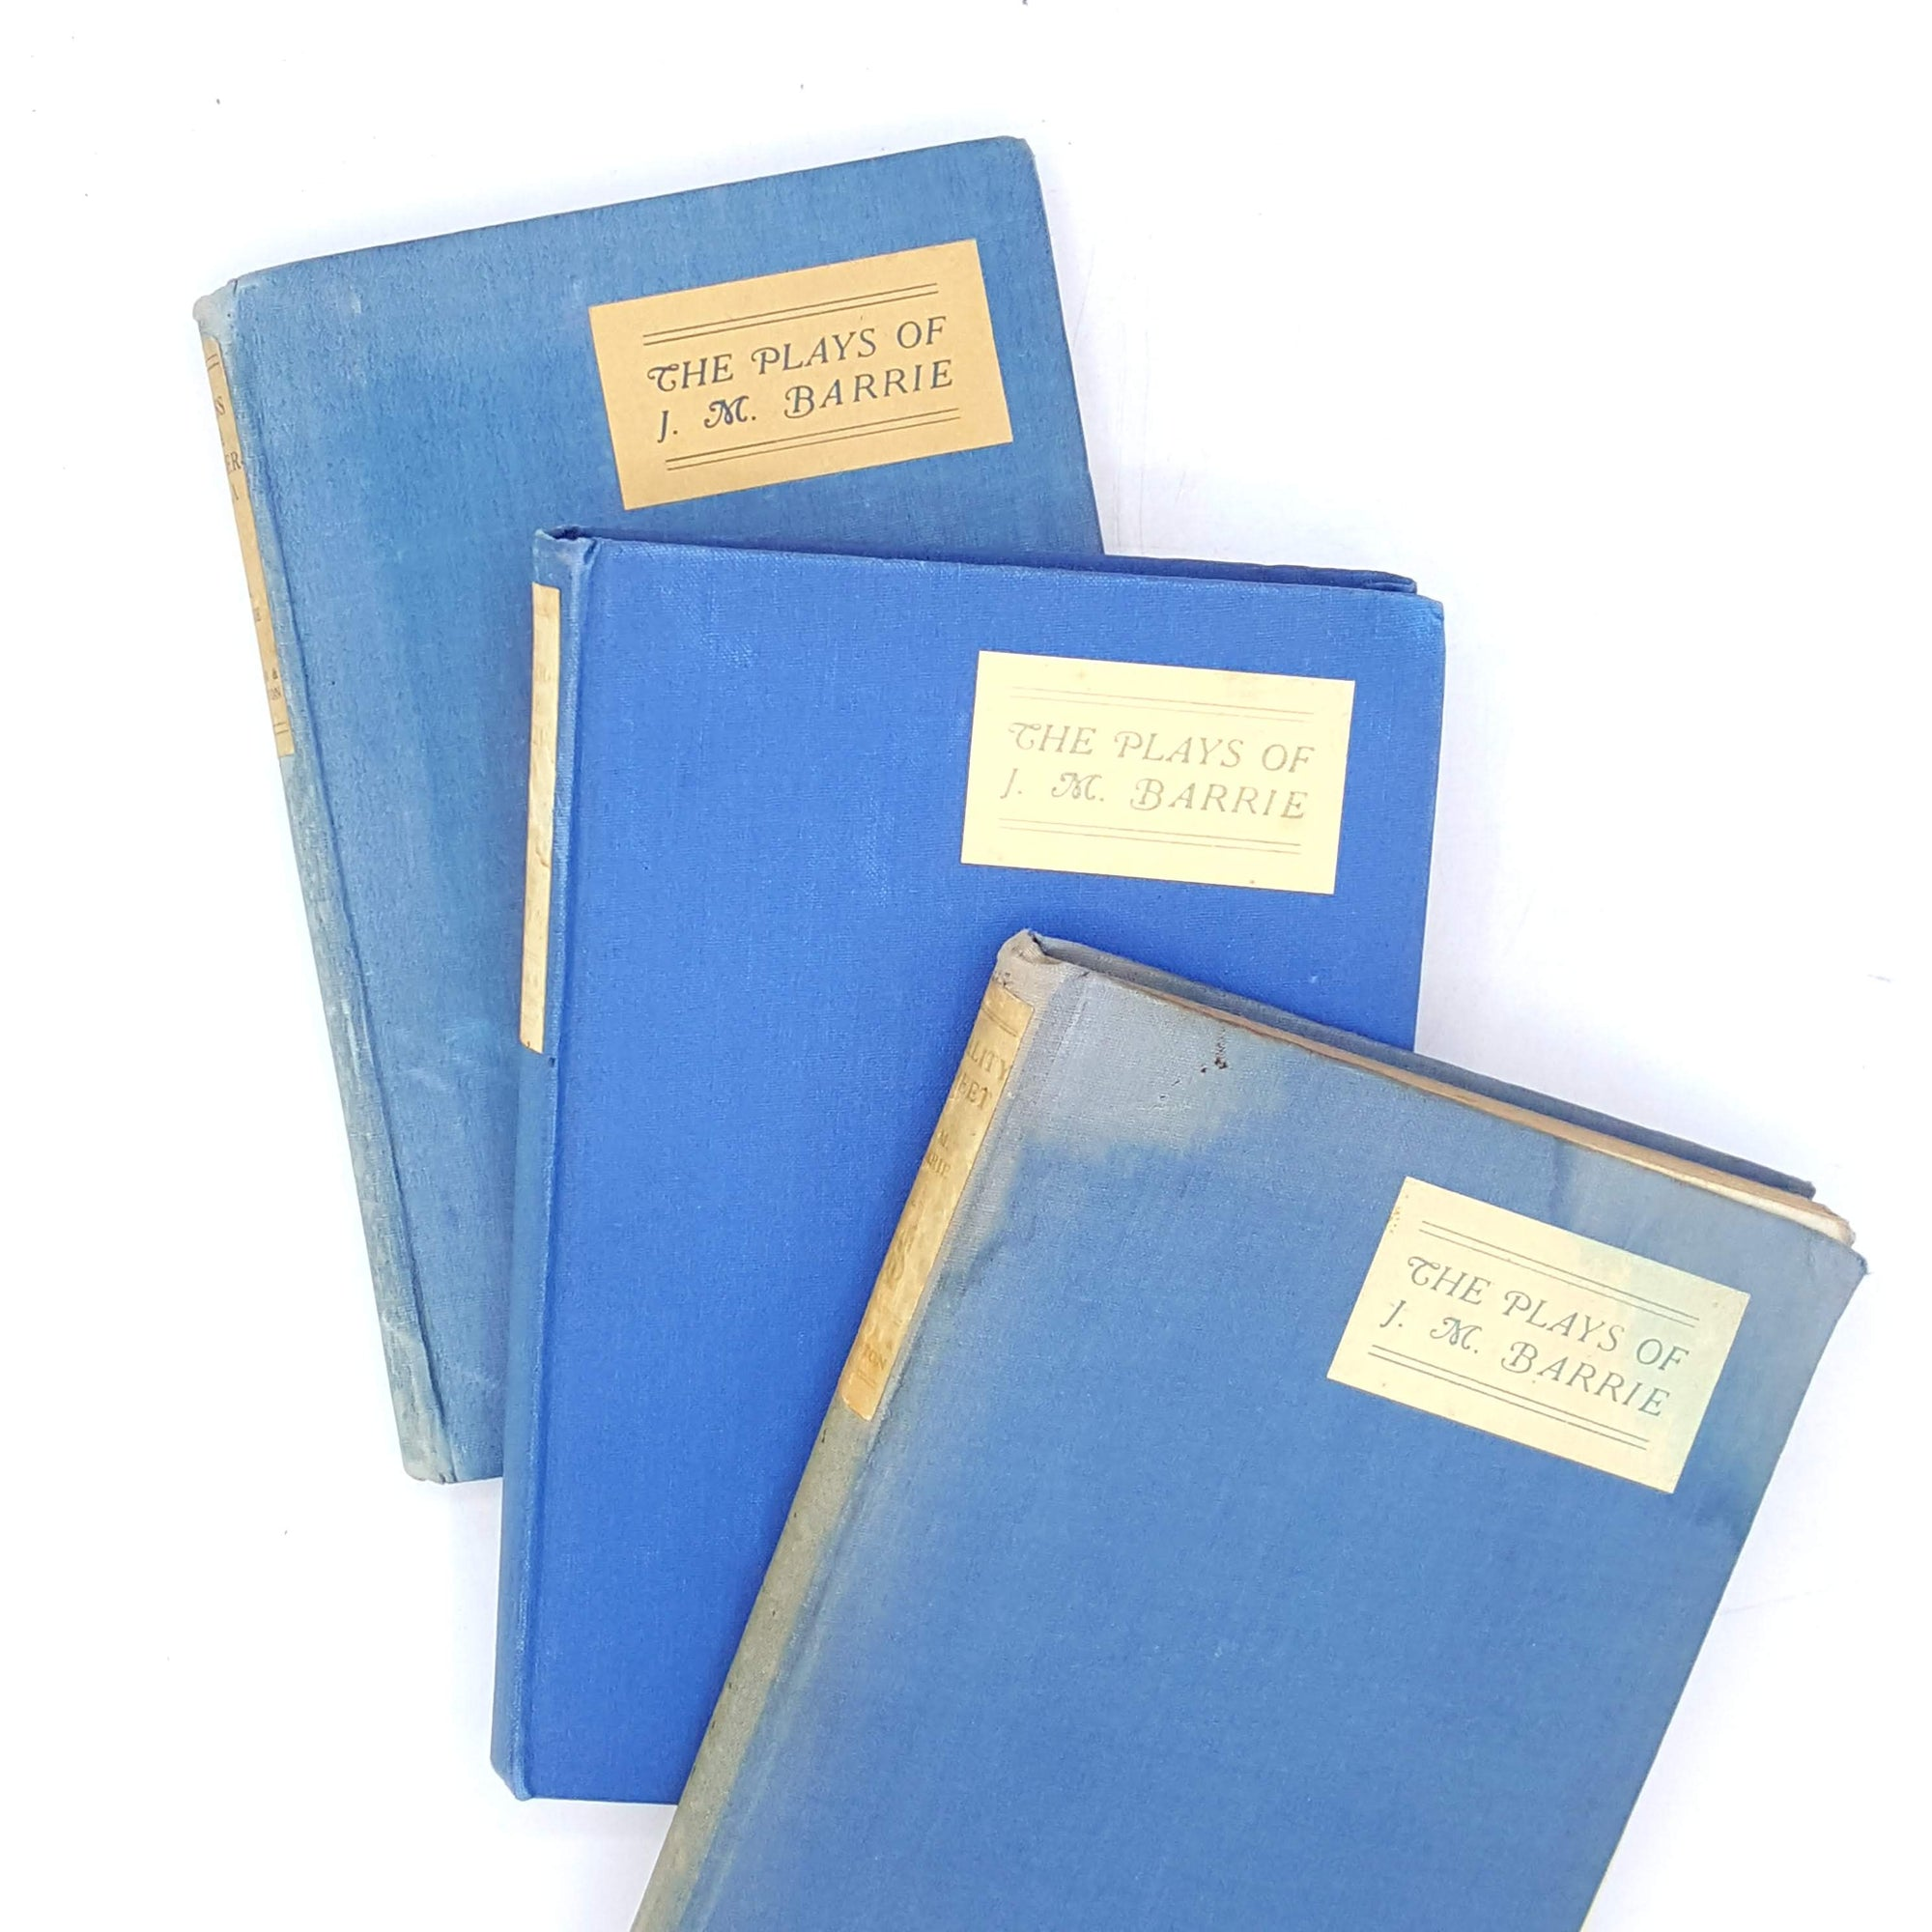 jmbarrie-classics-blue-rare-vintage-books-country-house-library-thrift-plays-collection-old-collection-